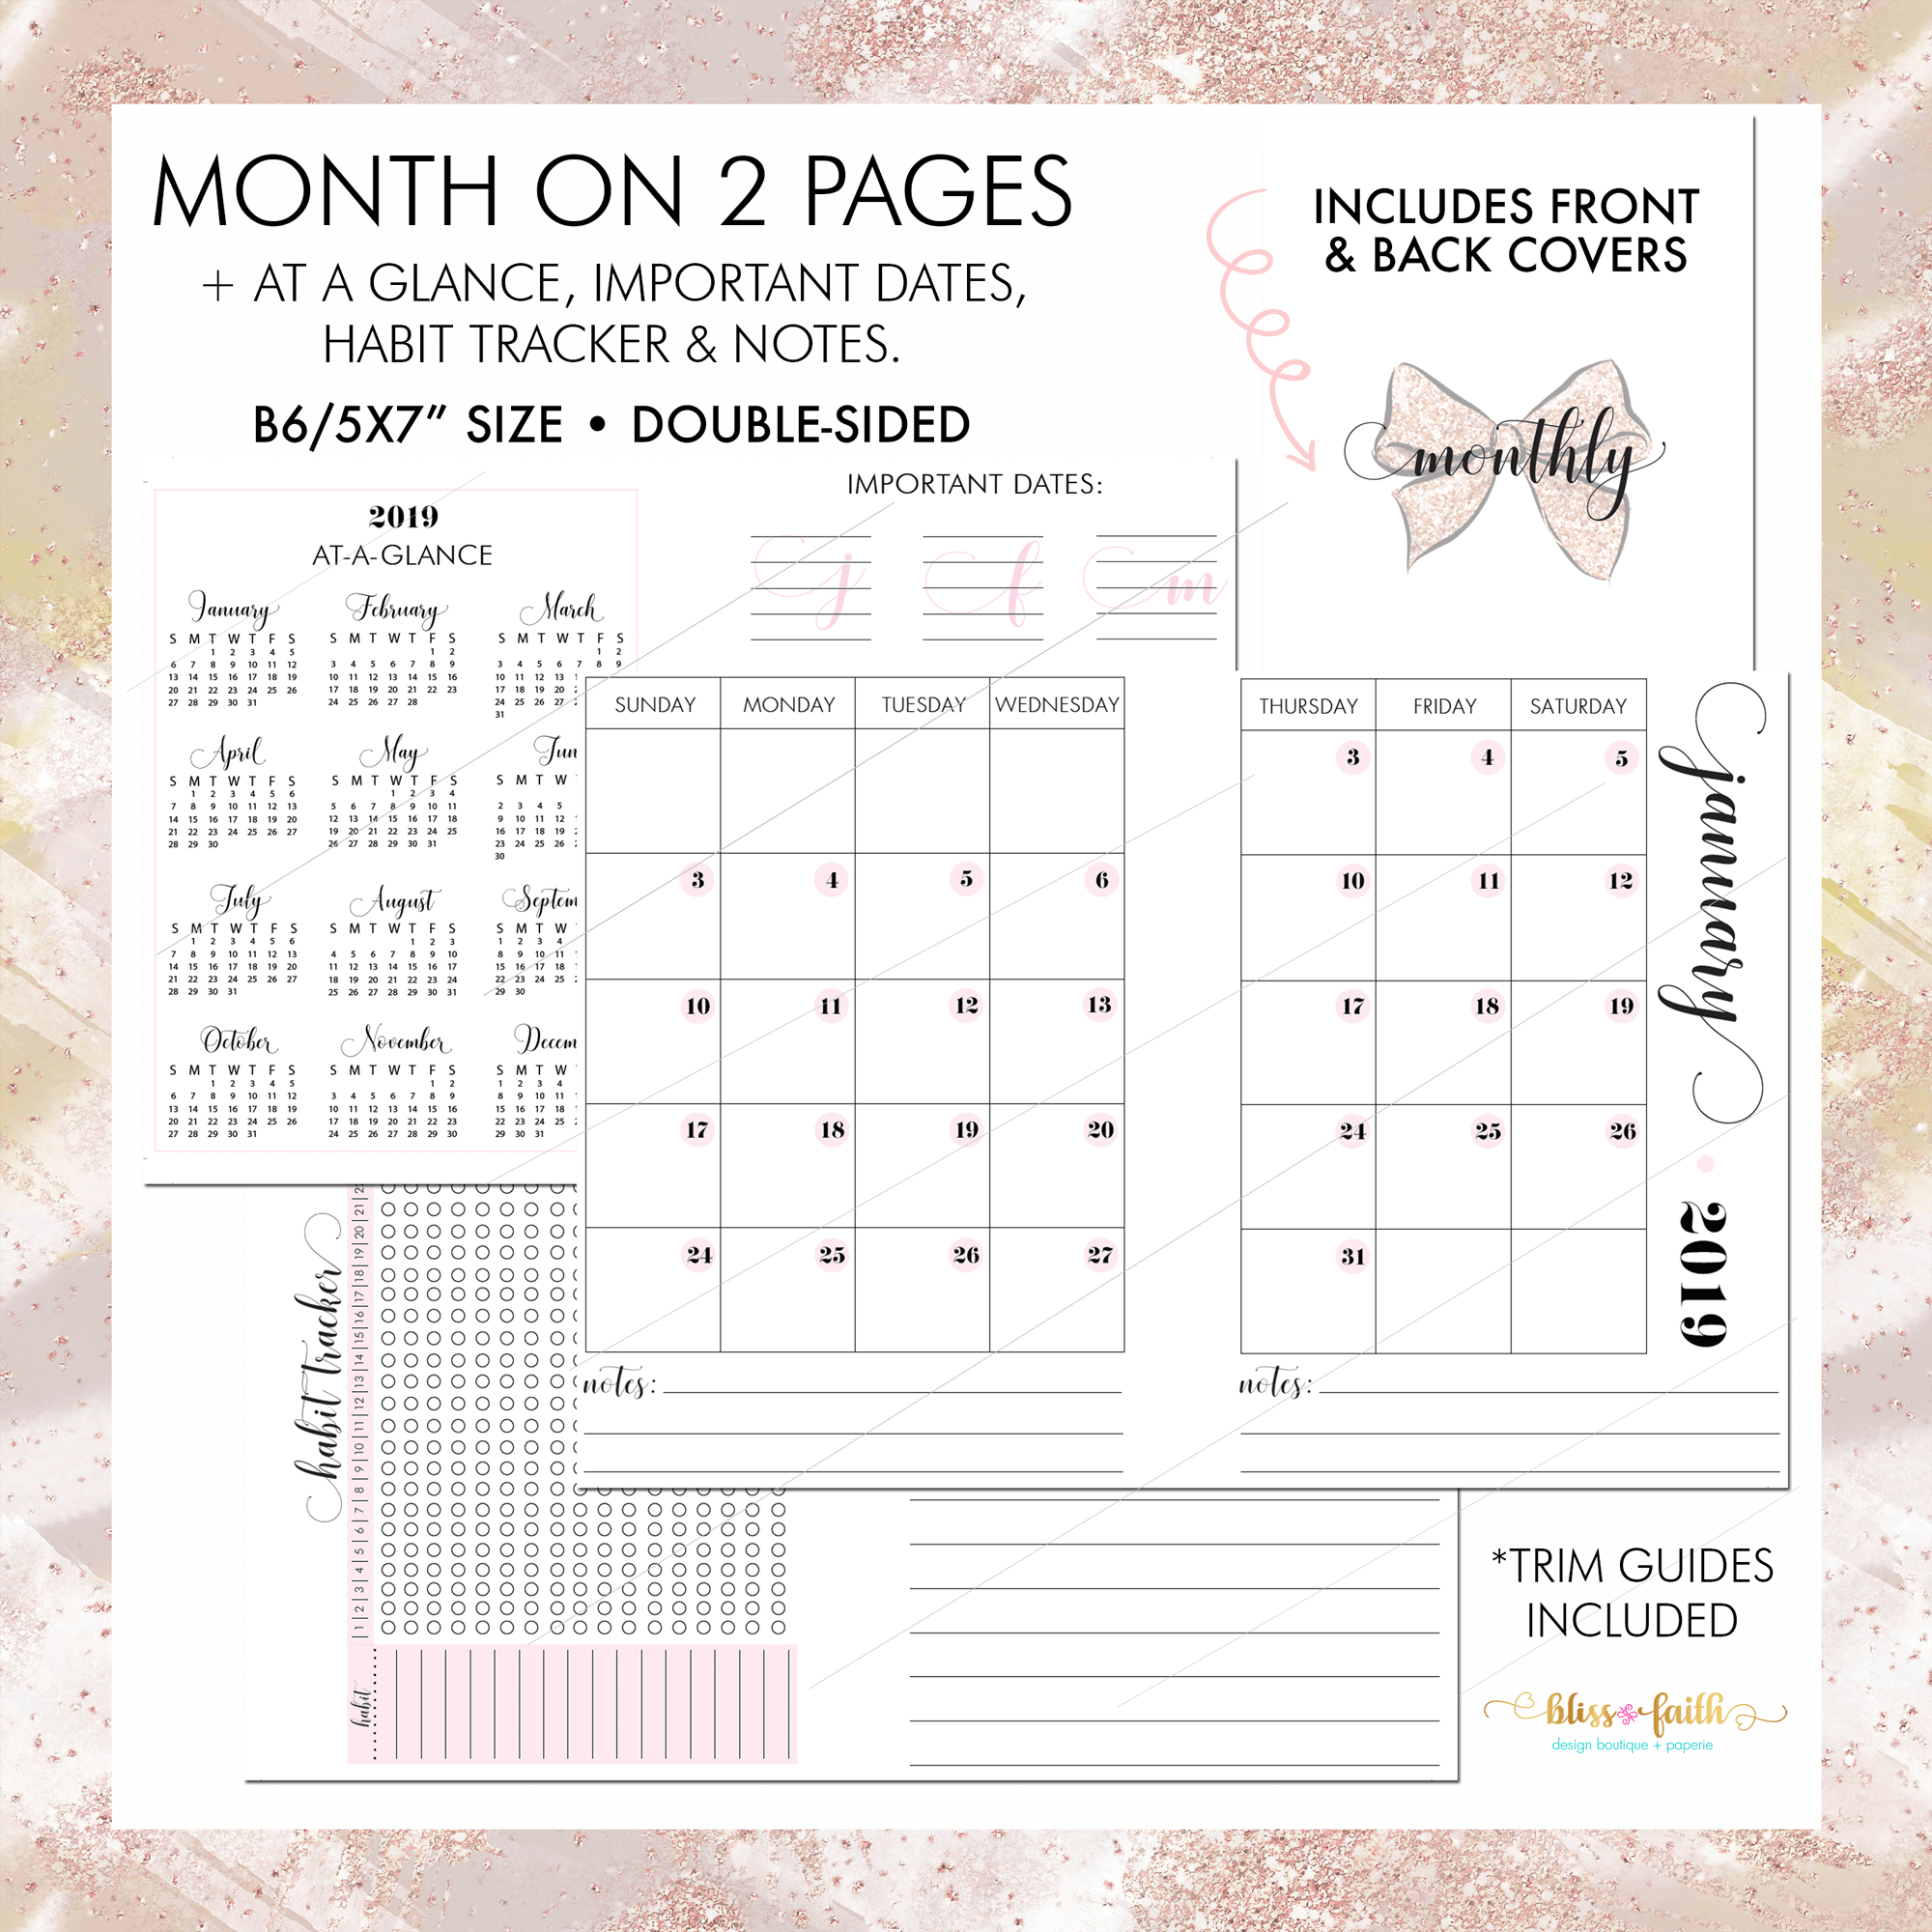 Month On 2 Pages + Habit Tracker, Notes, 2019 At A Glance & Important Dates B6 Rings Printable Insert | BlissandFaith.com